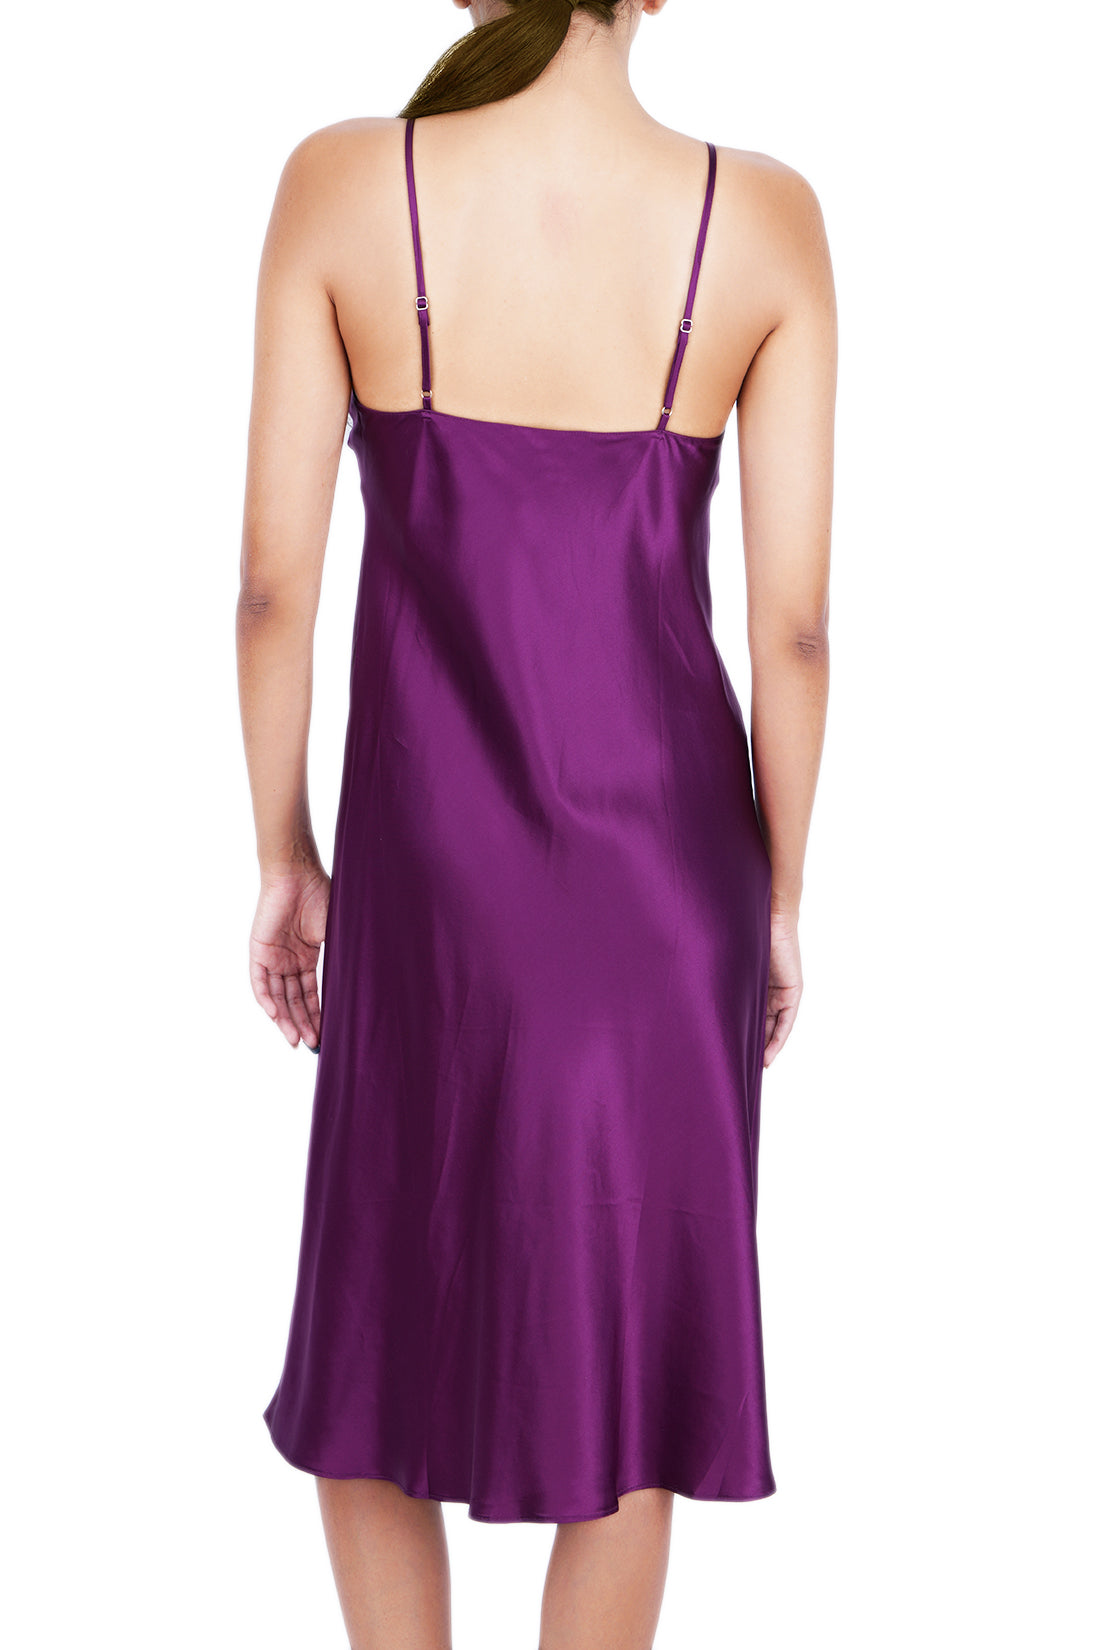 Women's Silk Sleepwear 100% Silk Full Slip -OSCAR ROSSA